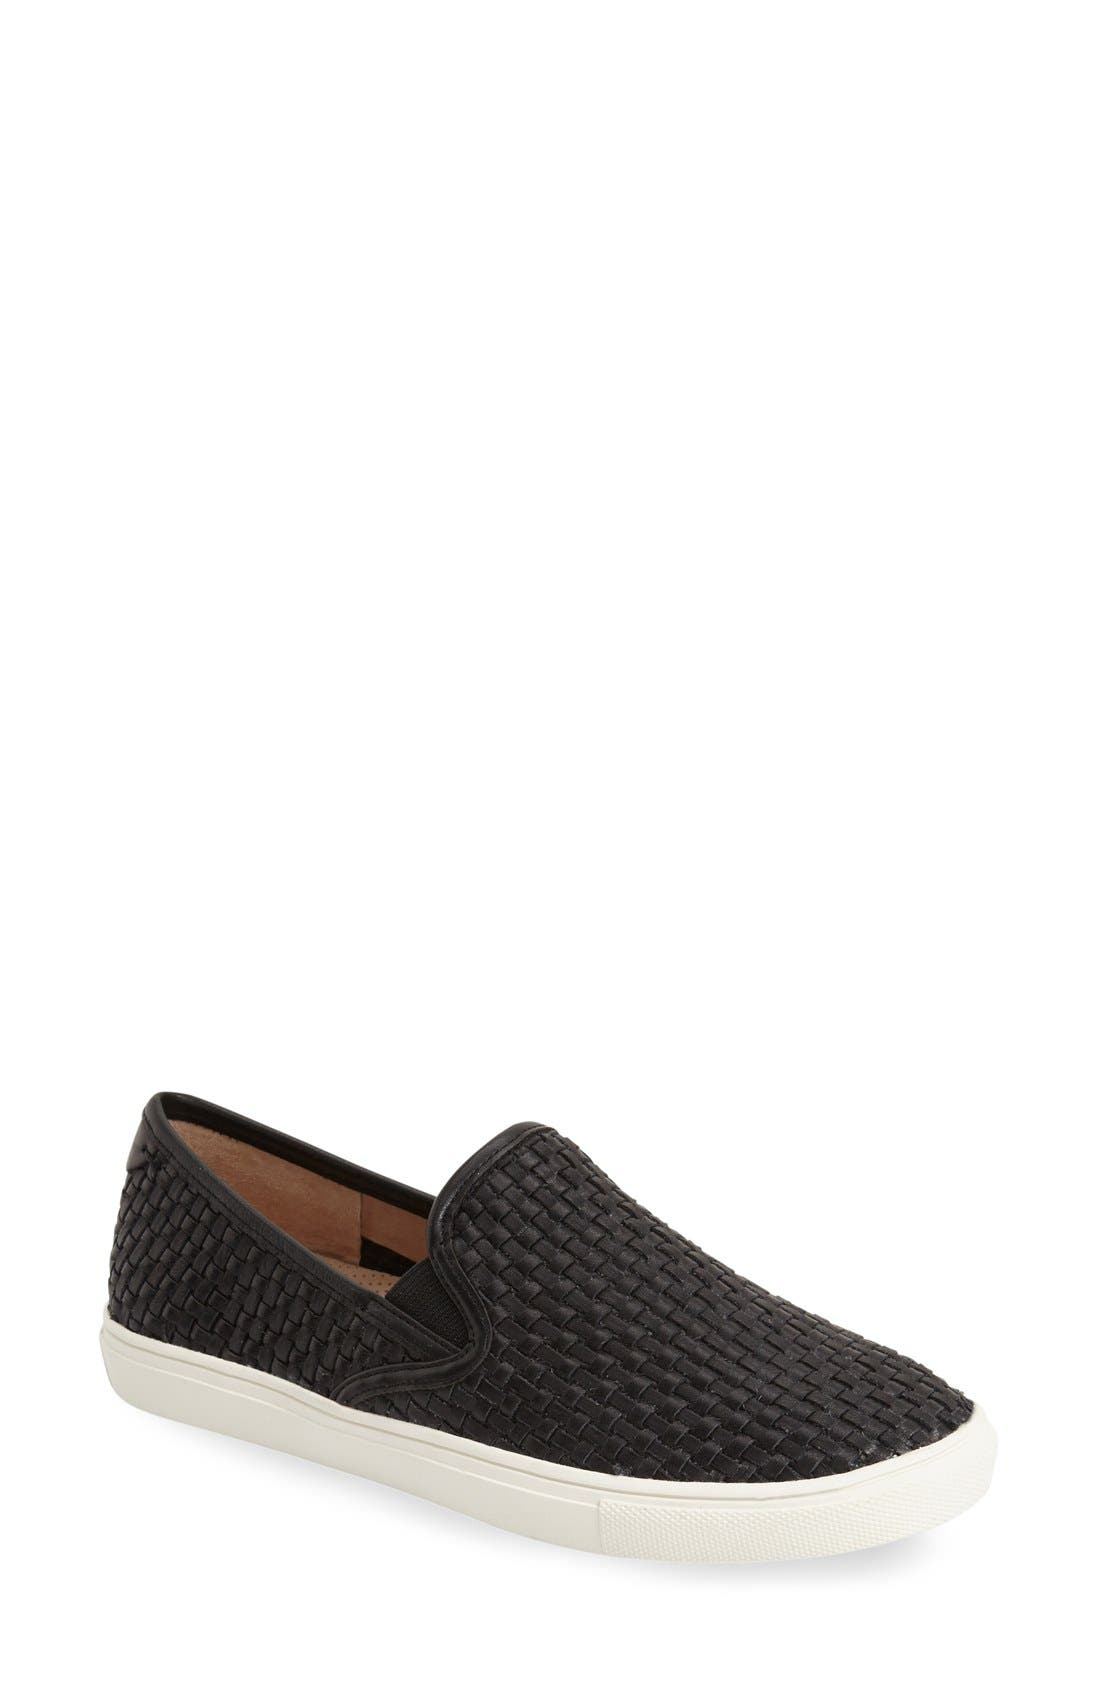 JSlides 'Calina' Slip-On Sneaker (Women)